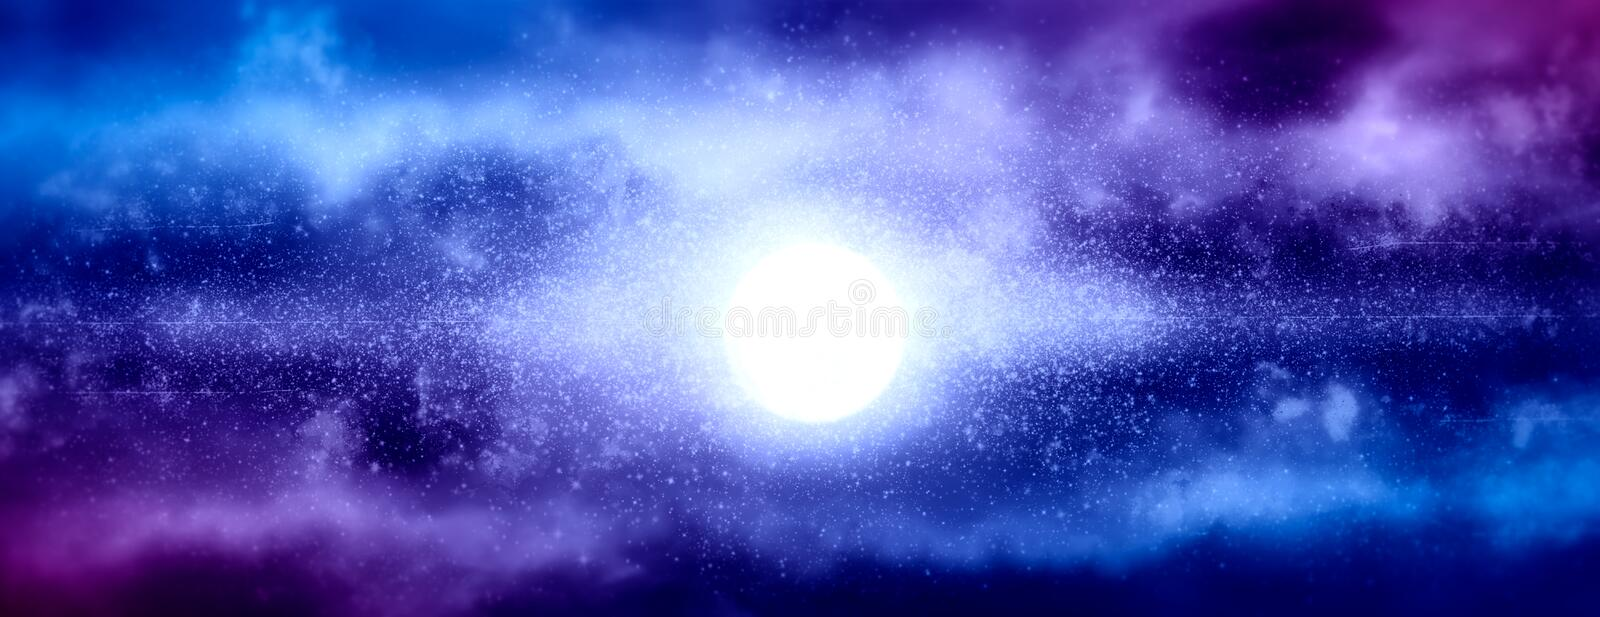 Abstract galaxy illustration royalty free stock photography